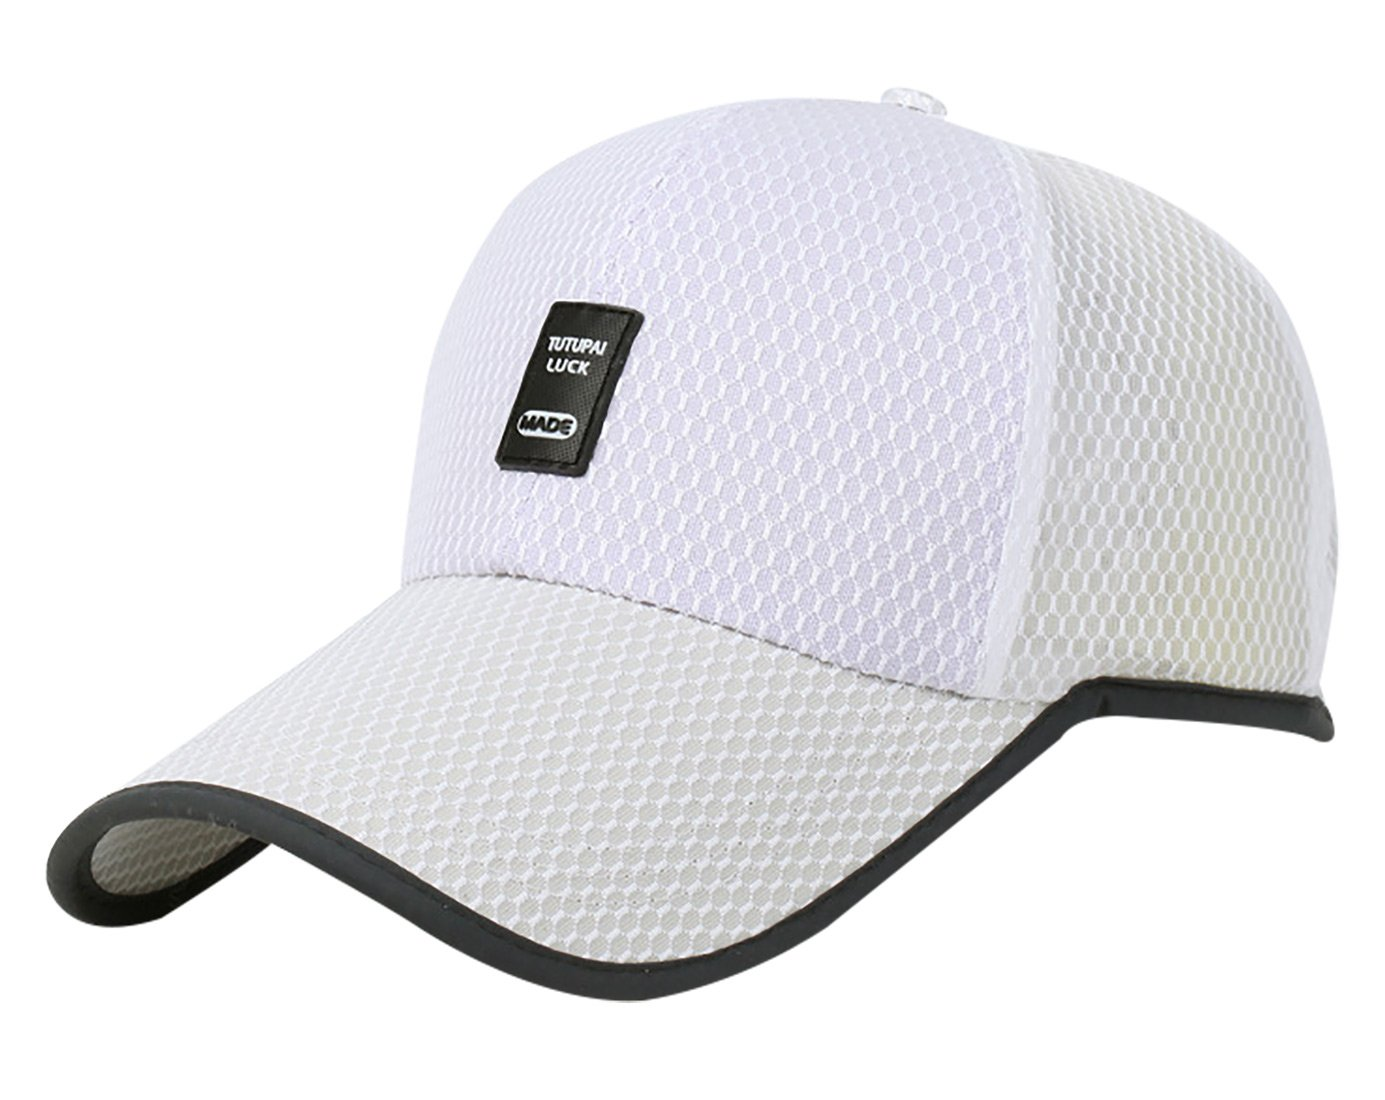 Panegy Sports Hats Adjustable Snapback Onesize Fit Runner Hats Breathable Lightweight Cap White